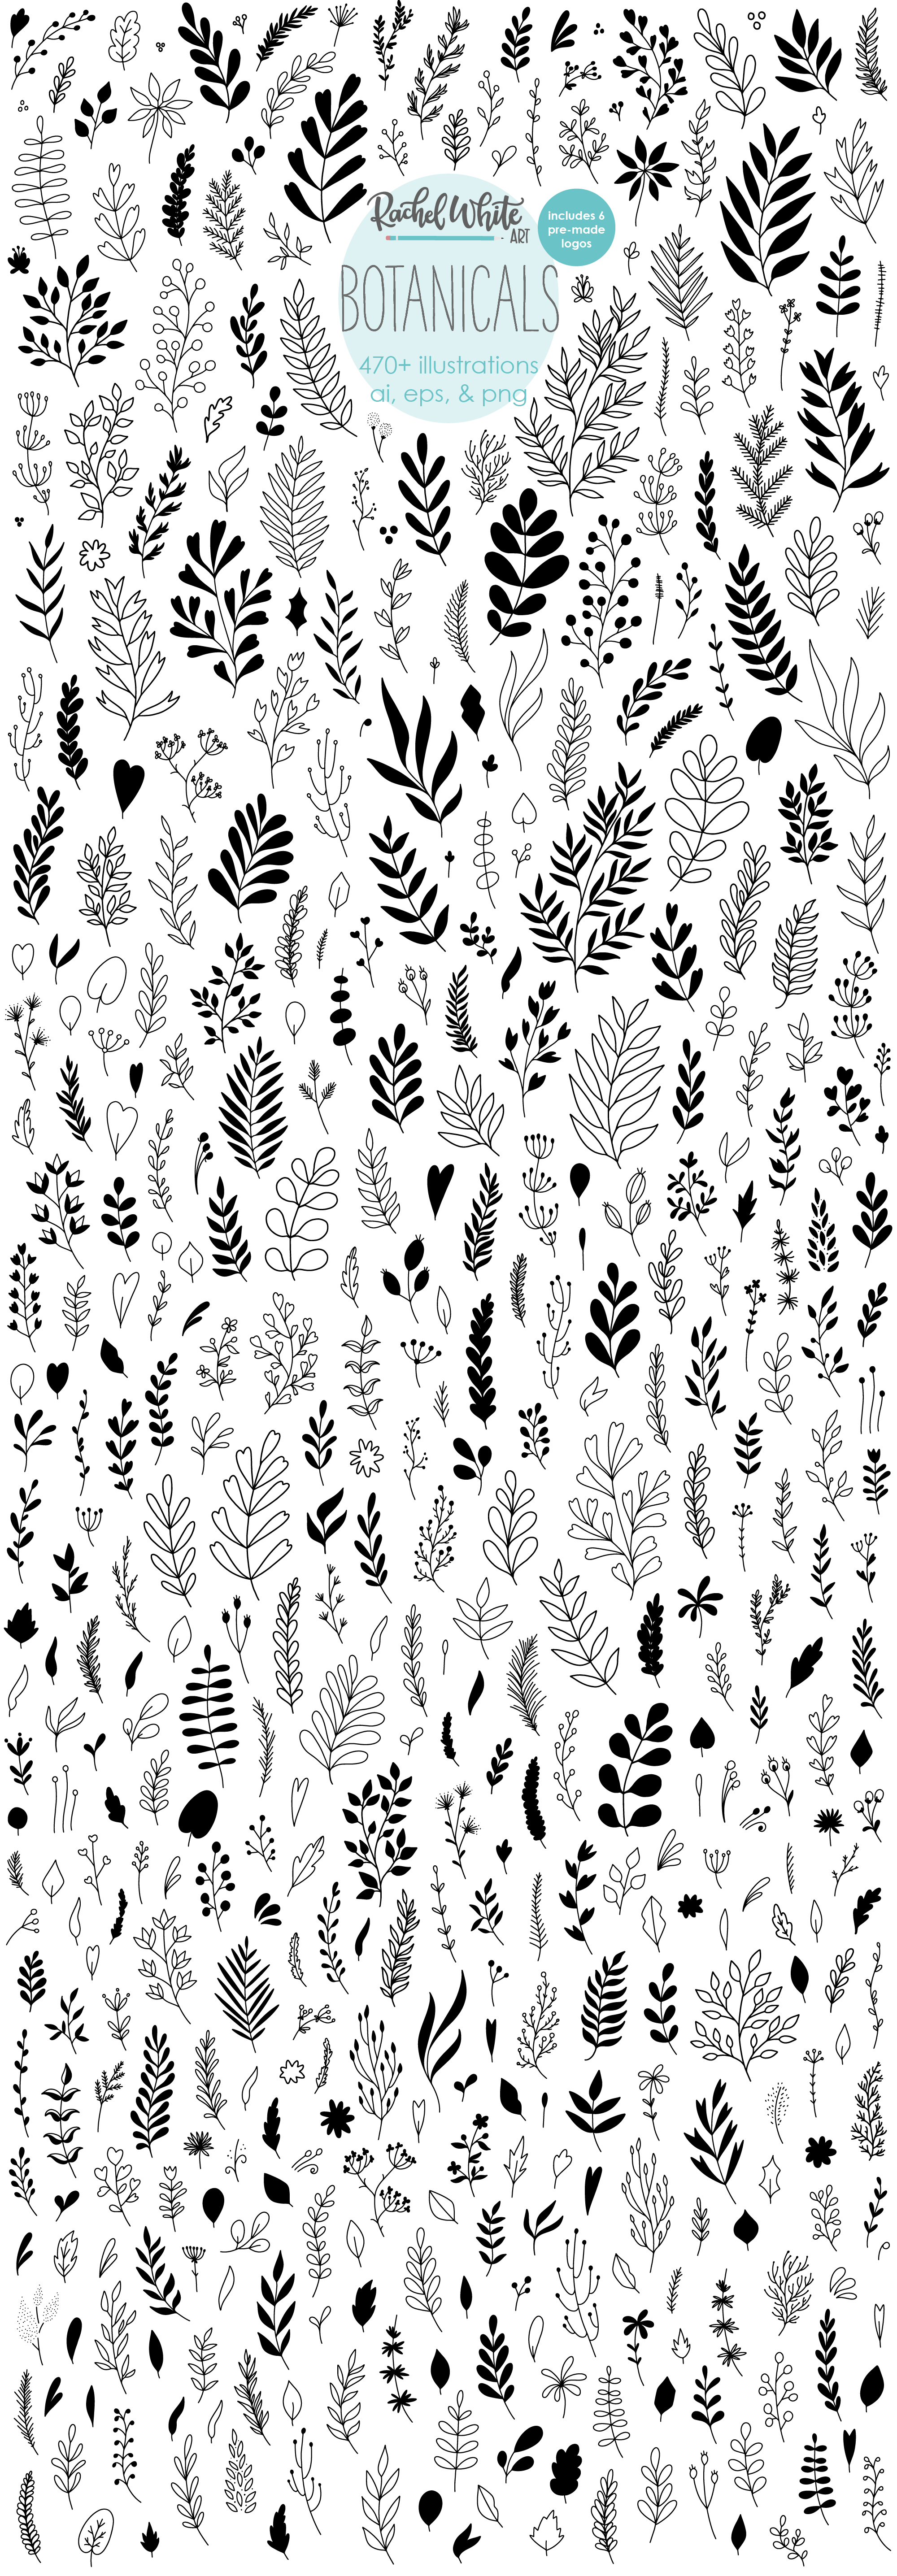 Botanicals, Vector Illustrations example image 1